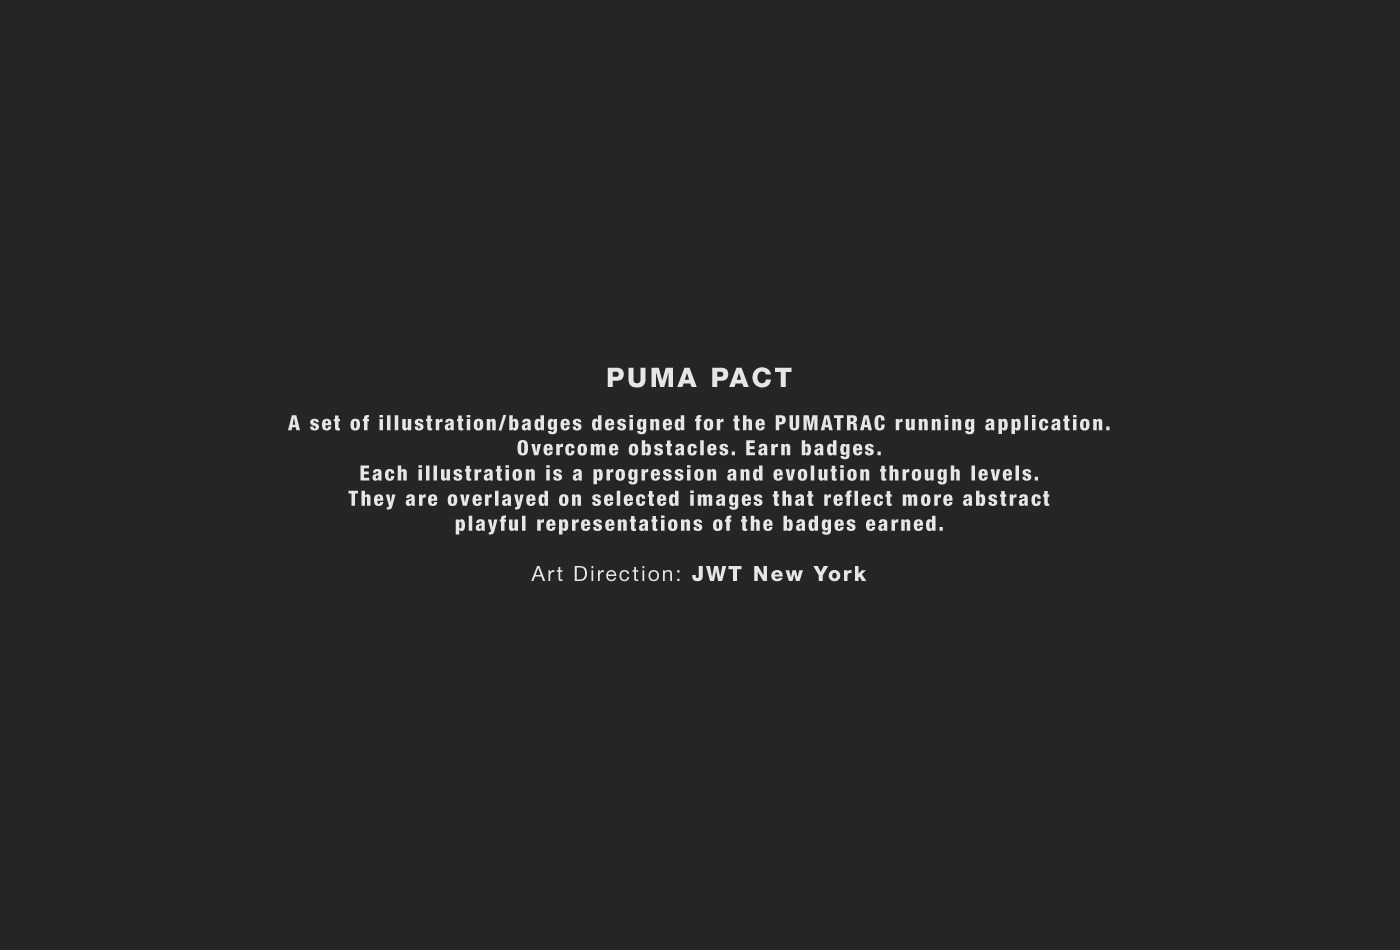 01-puma-pact-pumatrac-illustration-badges-badges-jwt-ny-vacaliebres